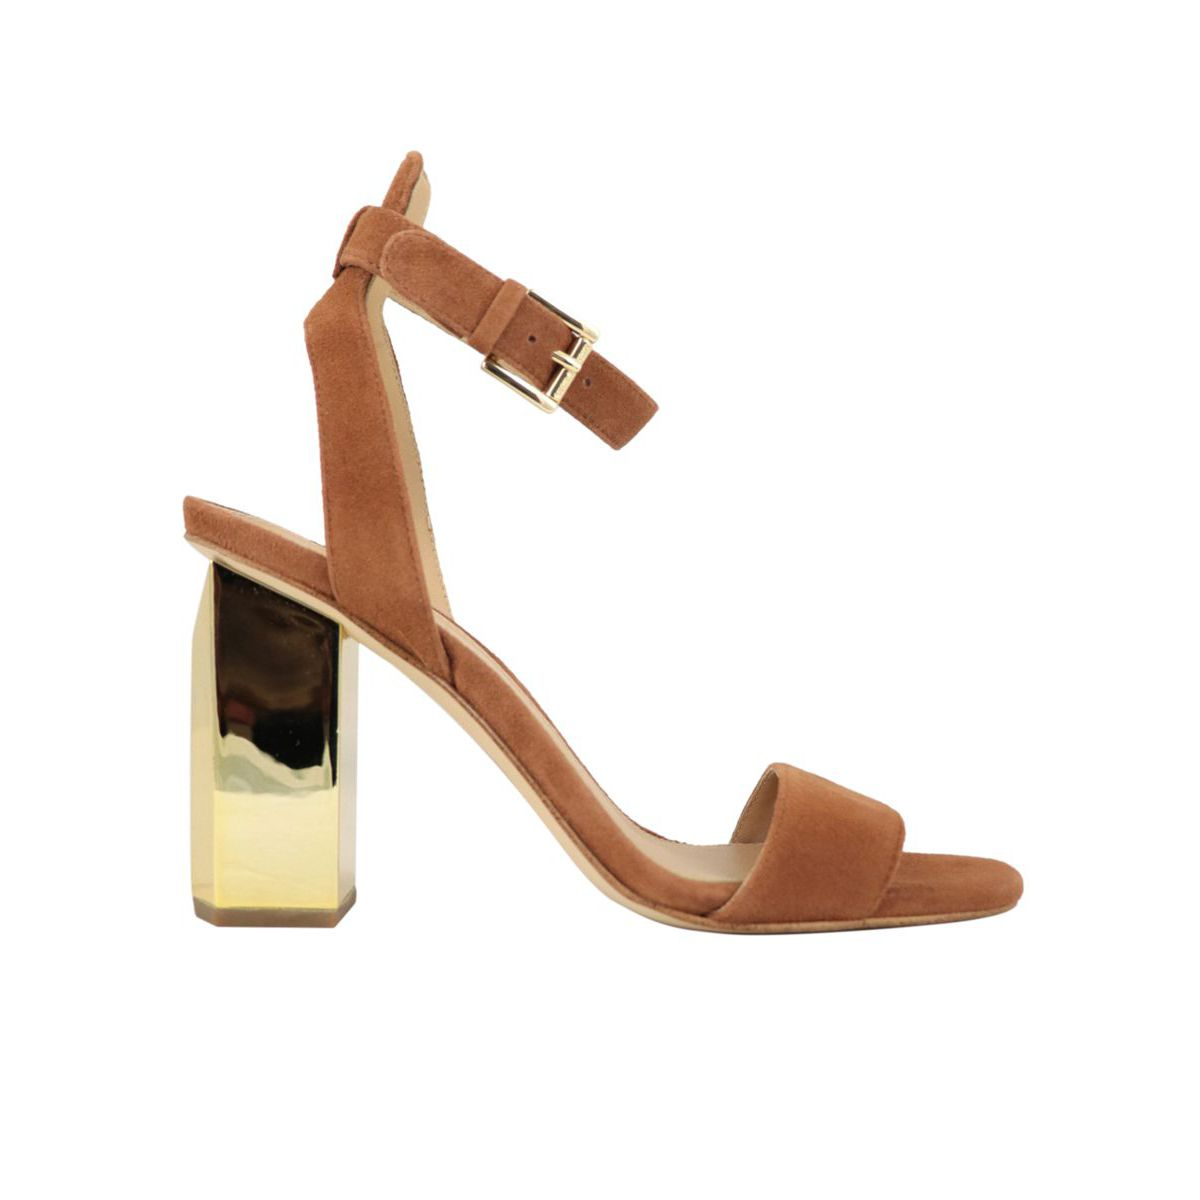 Sandal PETRA ANKLE STRAP Leather Michael Kors